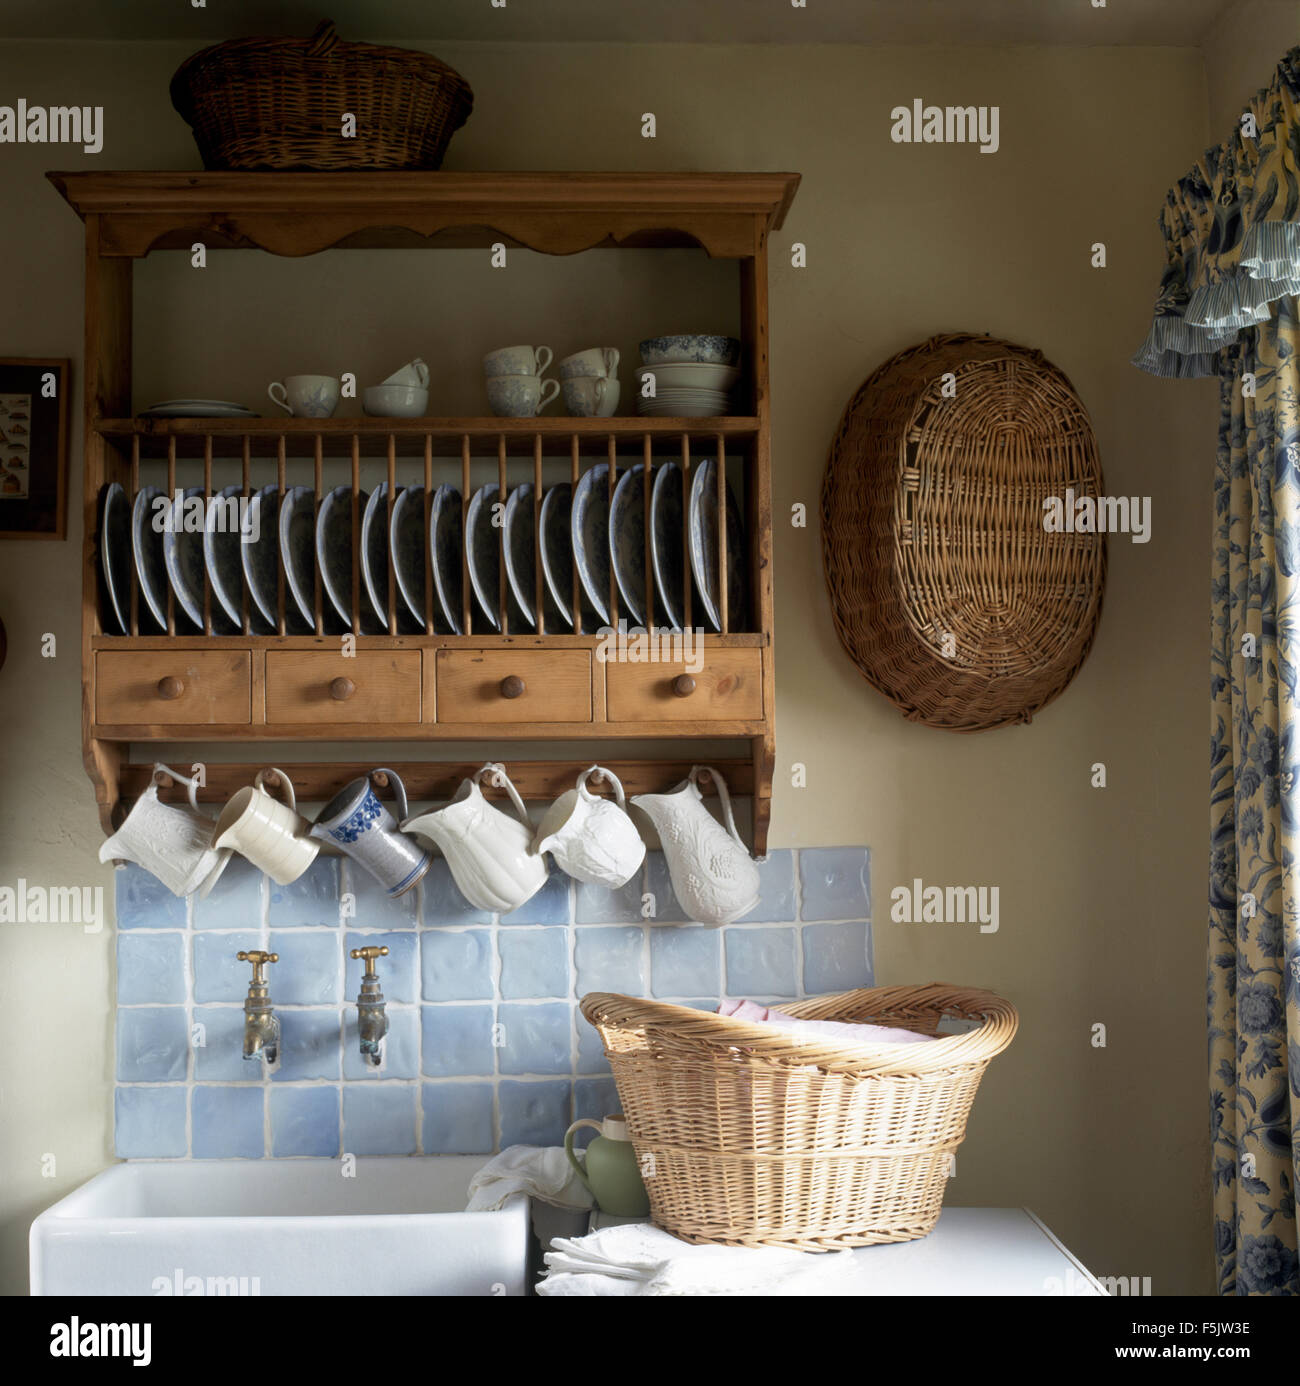 Pine Plate Rack And Row Of Jugs Above Sink In Cottage Kitchen With Laundry  Basket On Worktop